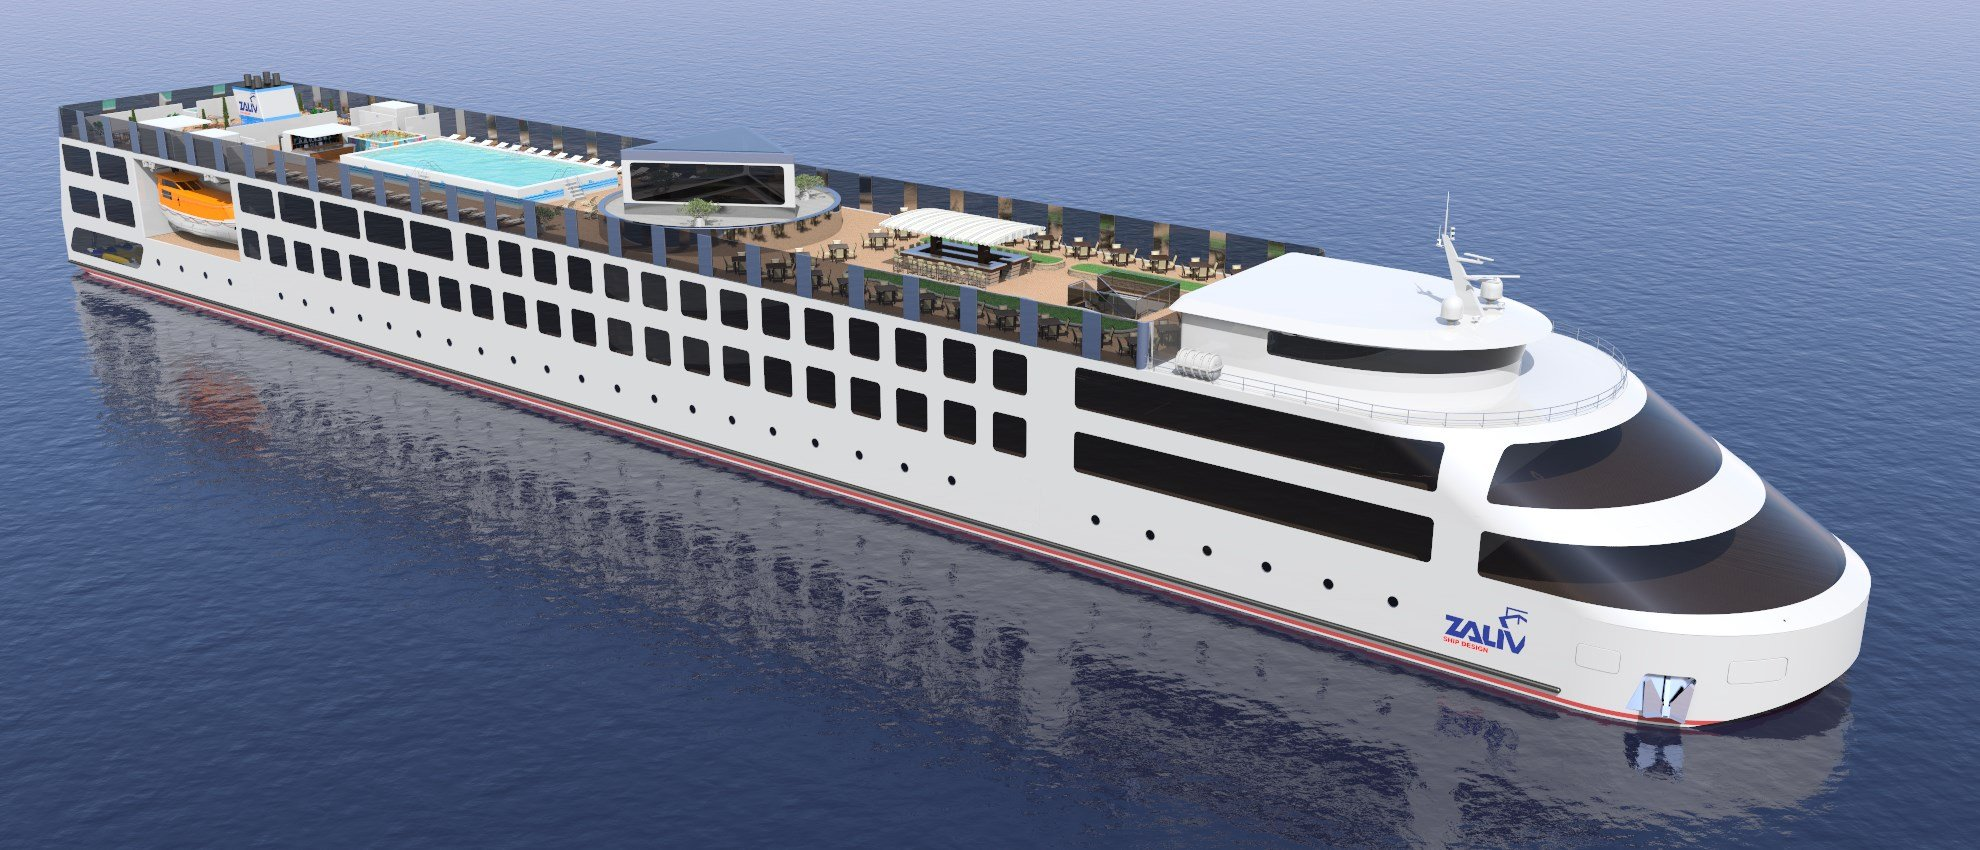 Small-Scale-Cruise-Ship